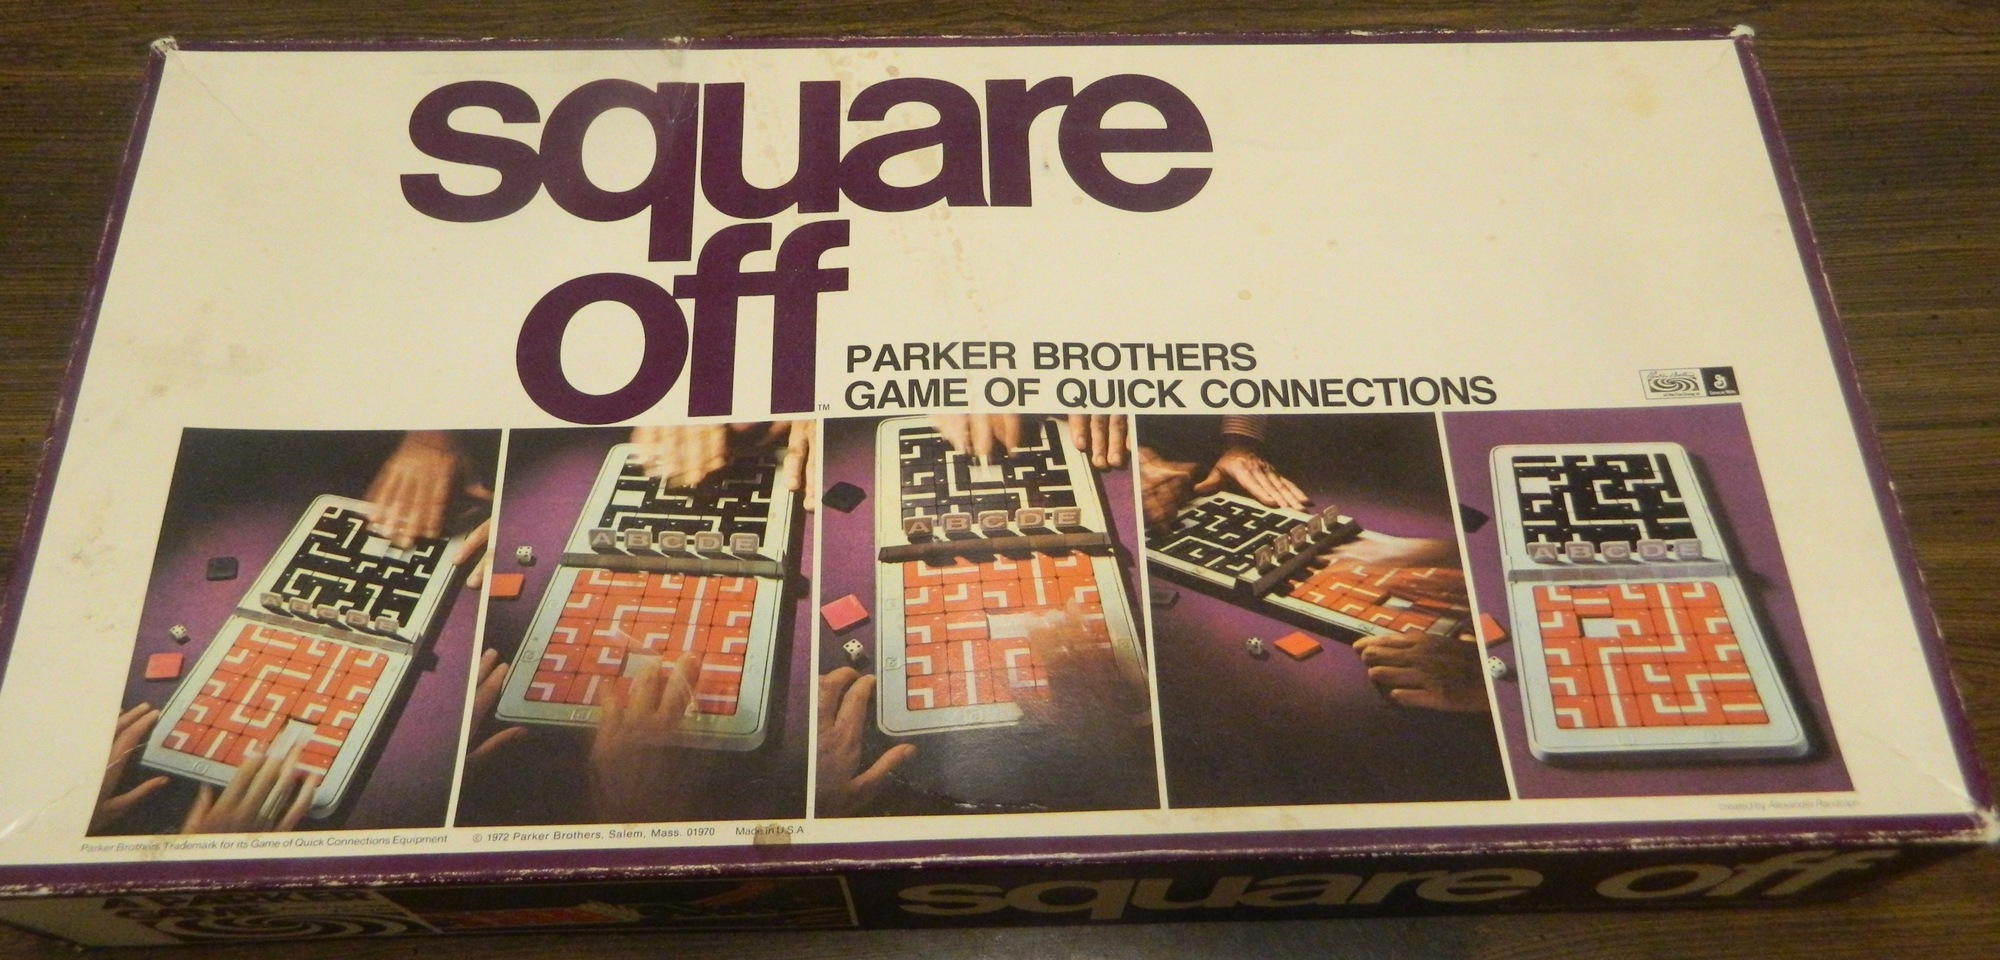 Box for Square Off